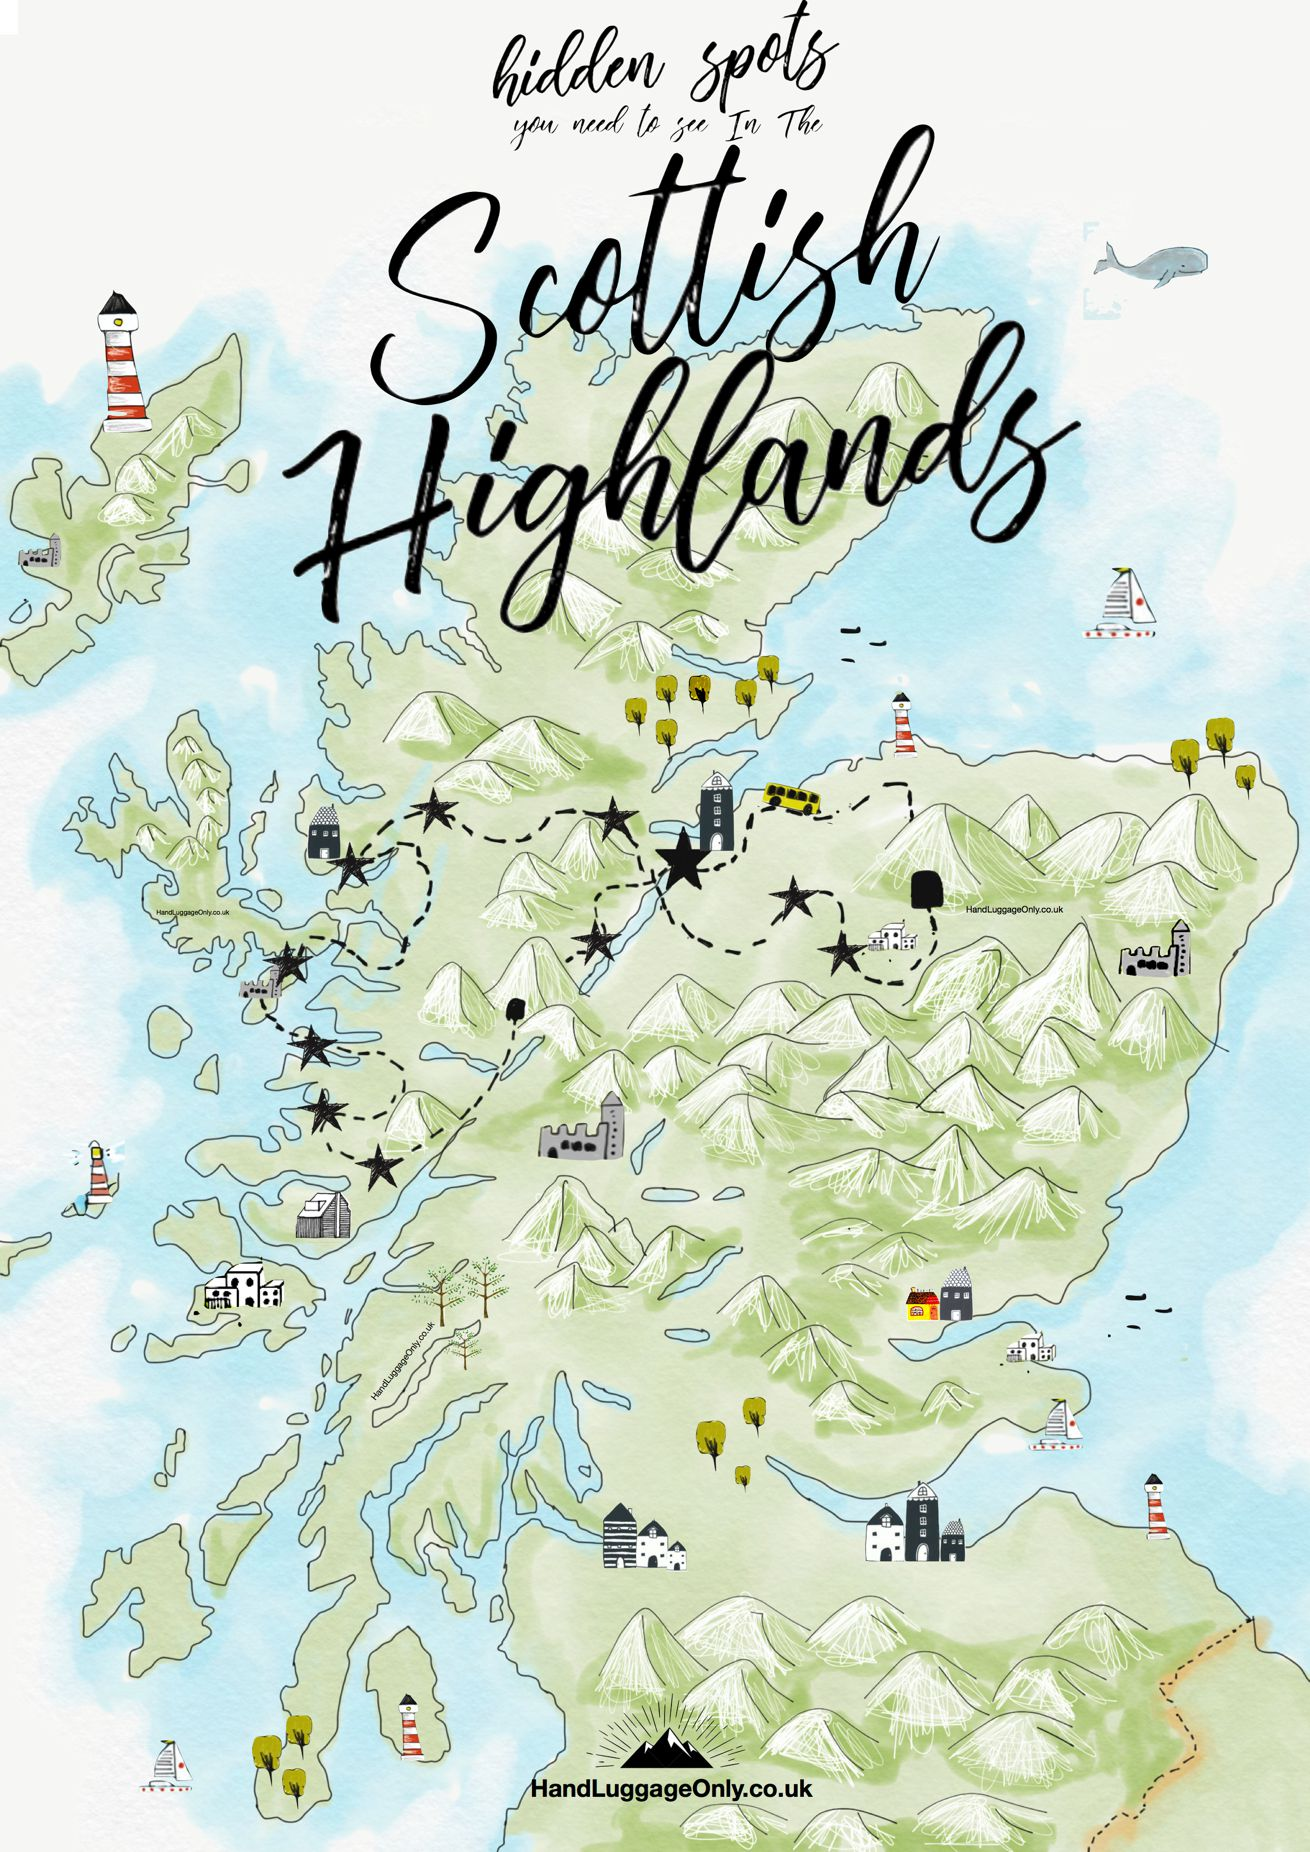 Your Perfect Itinerary To See The Hidden Spots In The Scottish Highlands (1)